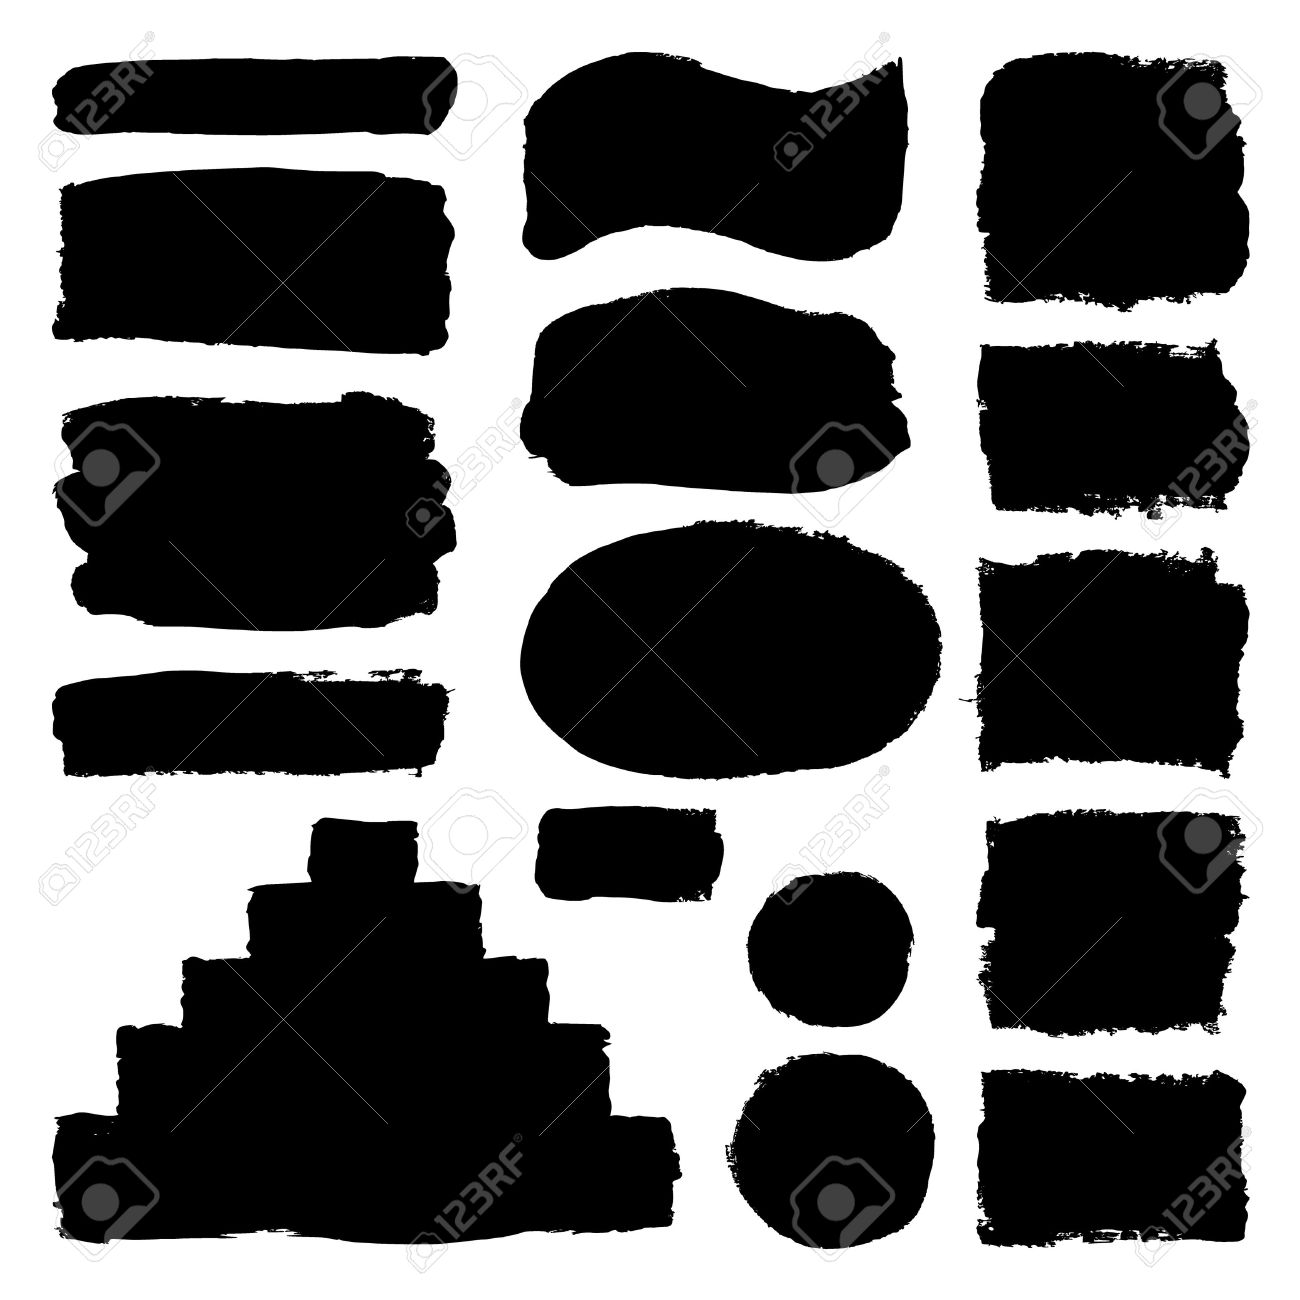 Hand drawn abstract black paint brush strokes. Vector set collection of shapes isolated on white background. Round, oval, ellipse, pyramid, circle, rectangle elements for design. - 54855162